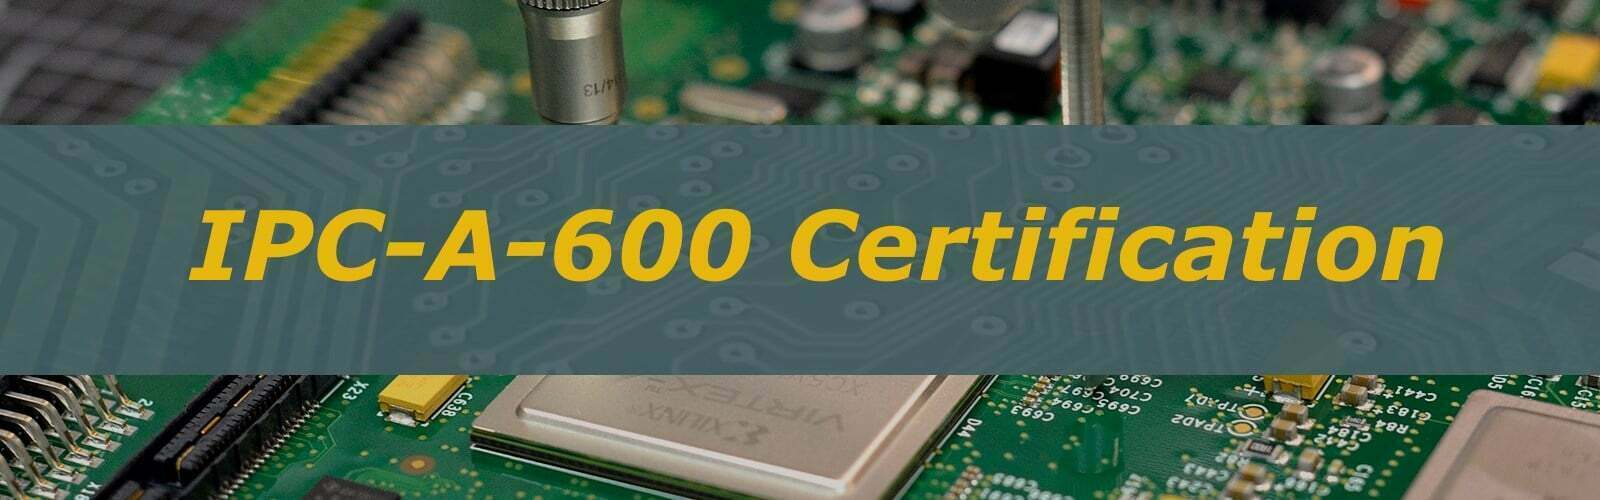 CERTIFICATION IPC-A-600 CERTIFIED IPC TRAINER (CIT)